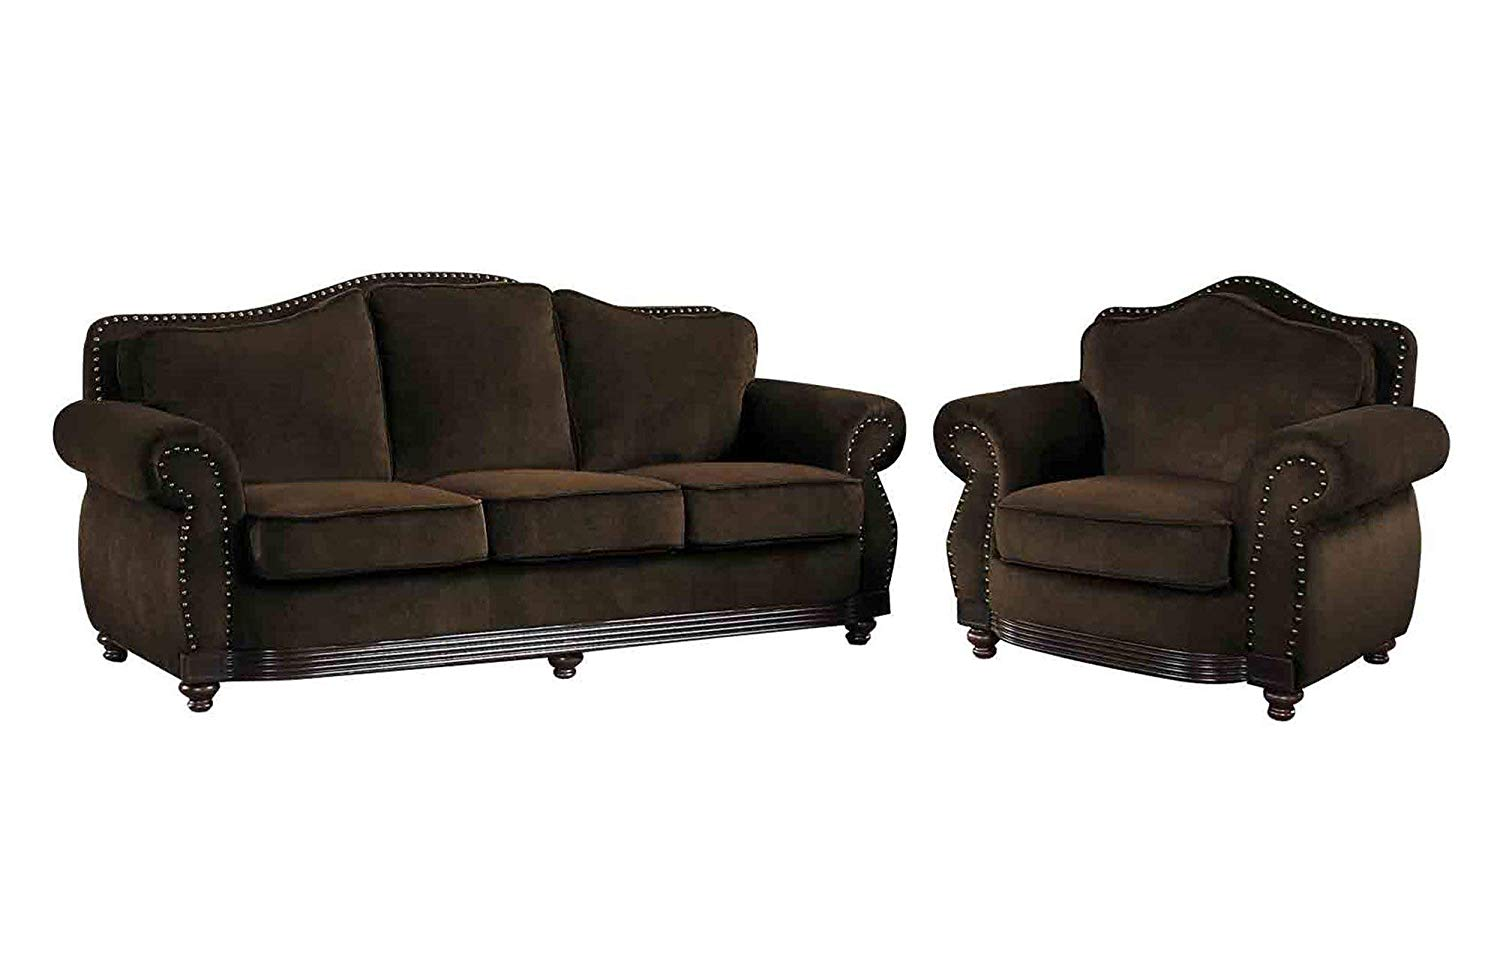 Get Quotations Martini Nail Trim 2pc Set Sofa Chair In Dark Brown Leather